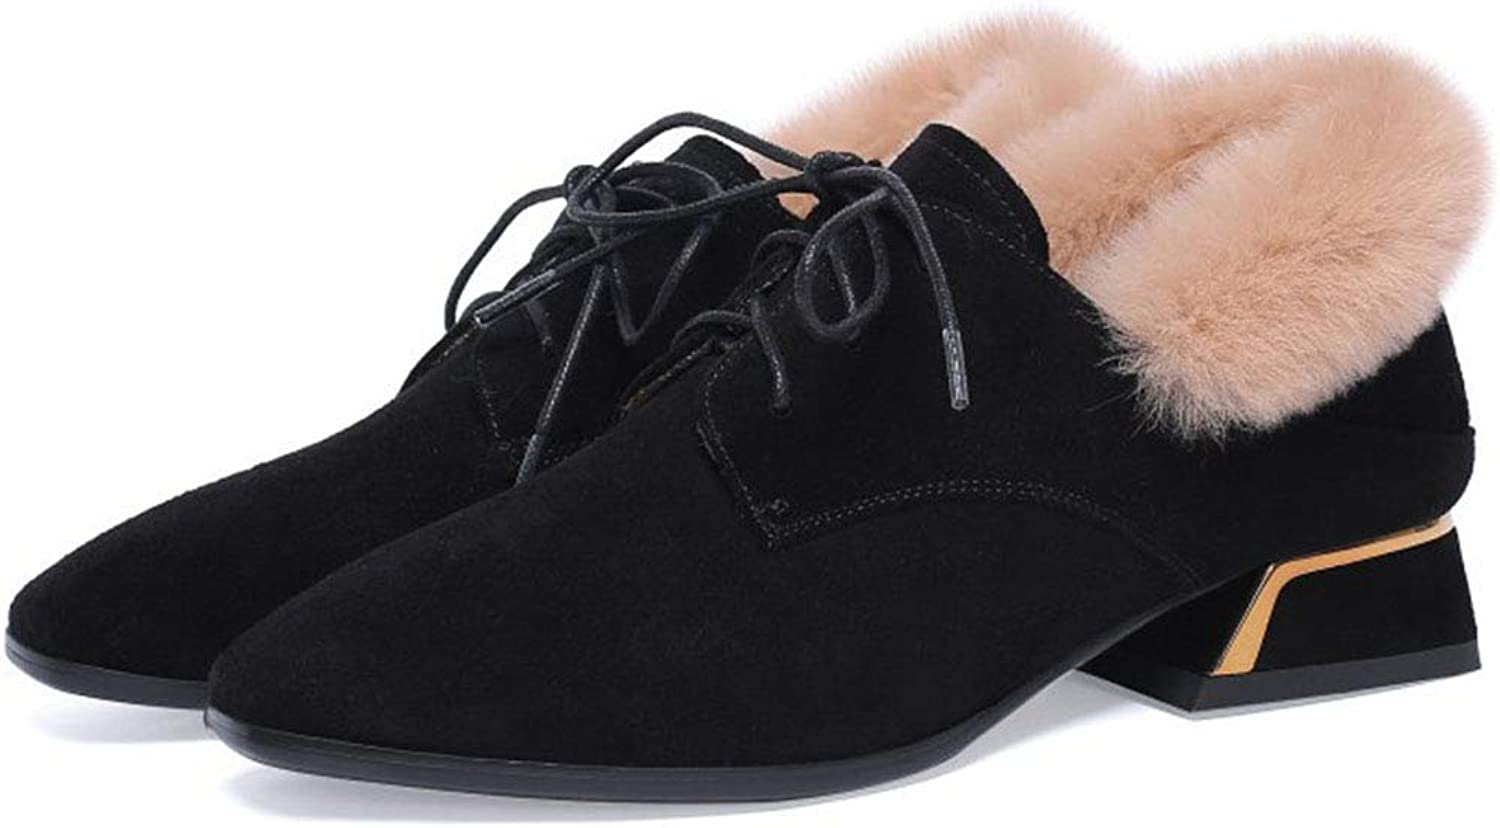 Women's Martin Boots Autumn and Winter Plus Velvet Warm Pointed Ankle Boots Casual shoes